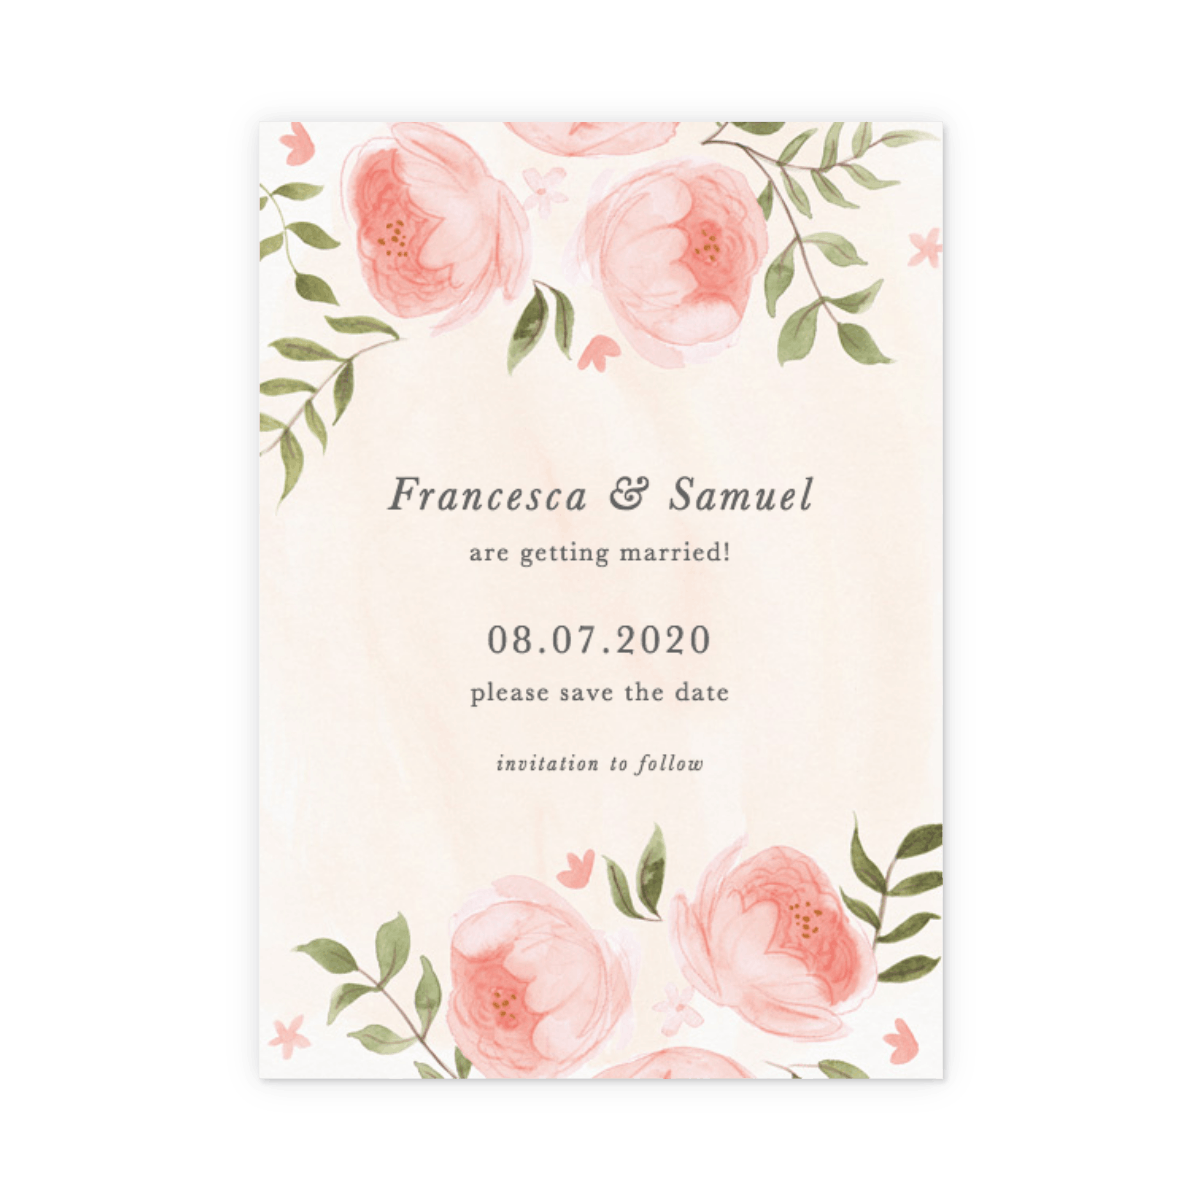 Https%3a%2f%2fwww.papier.com%2fproduct image%2f20492%2f4%2fblooming peonies 5241 front 1548870598.png?ixlib=rb 1.1